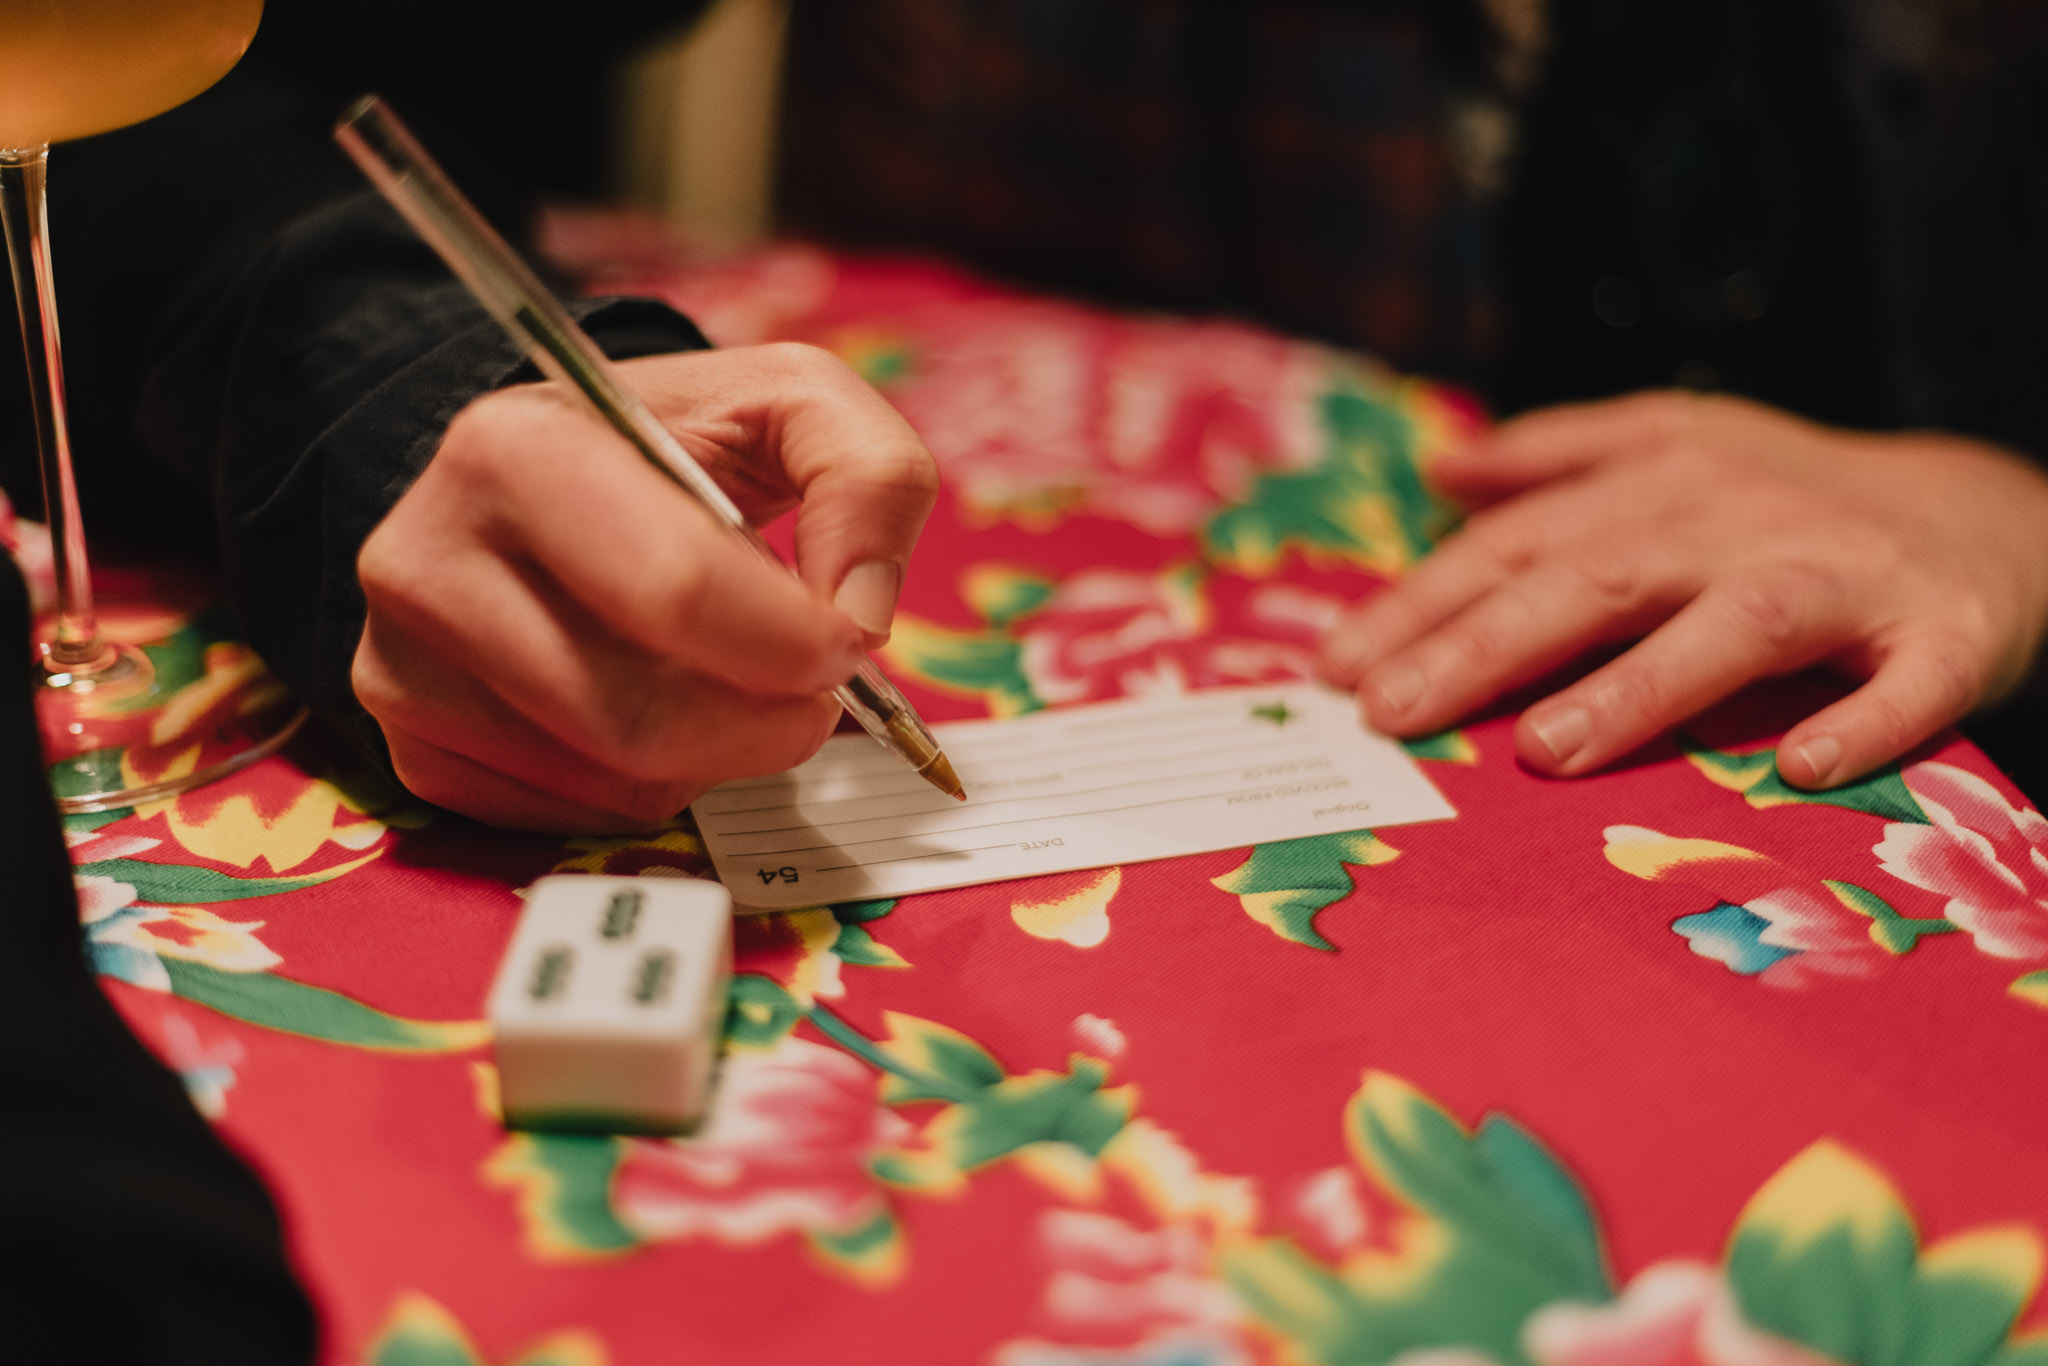 image of a hand writing a promise on a piece of paper